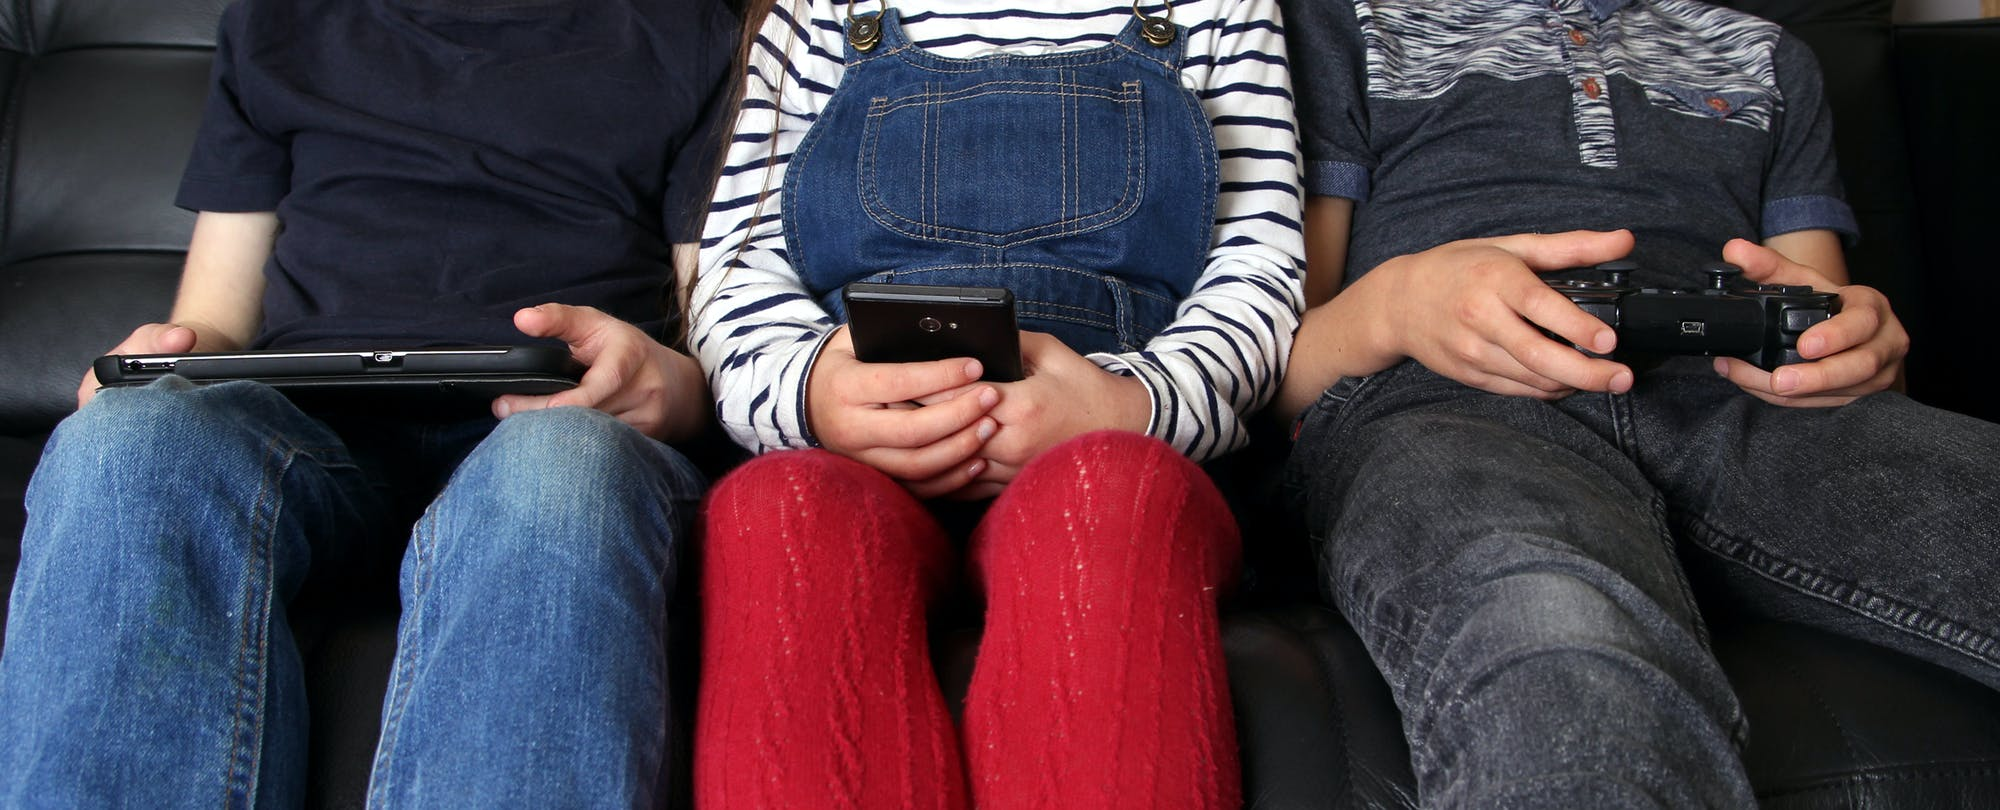 Enough With the Screen Time Scare! How to Be Sensible About Children's Device Use